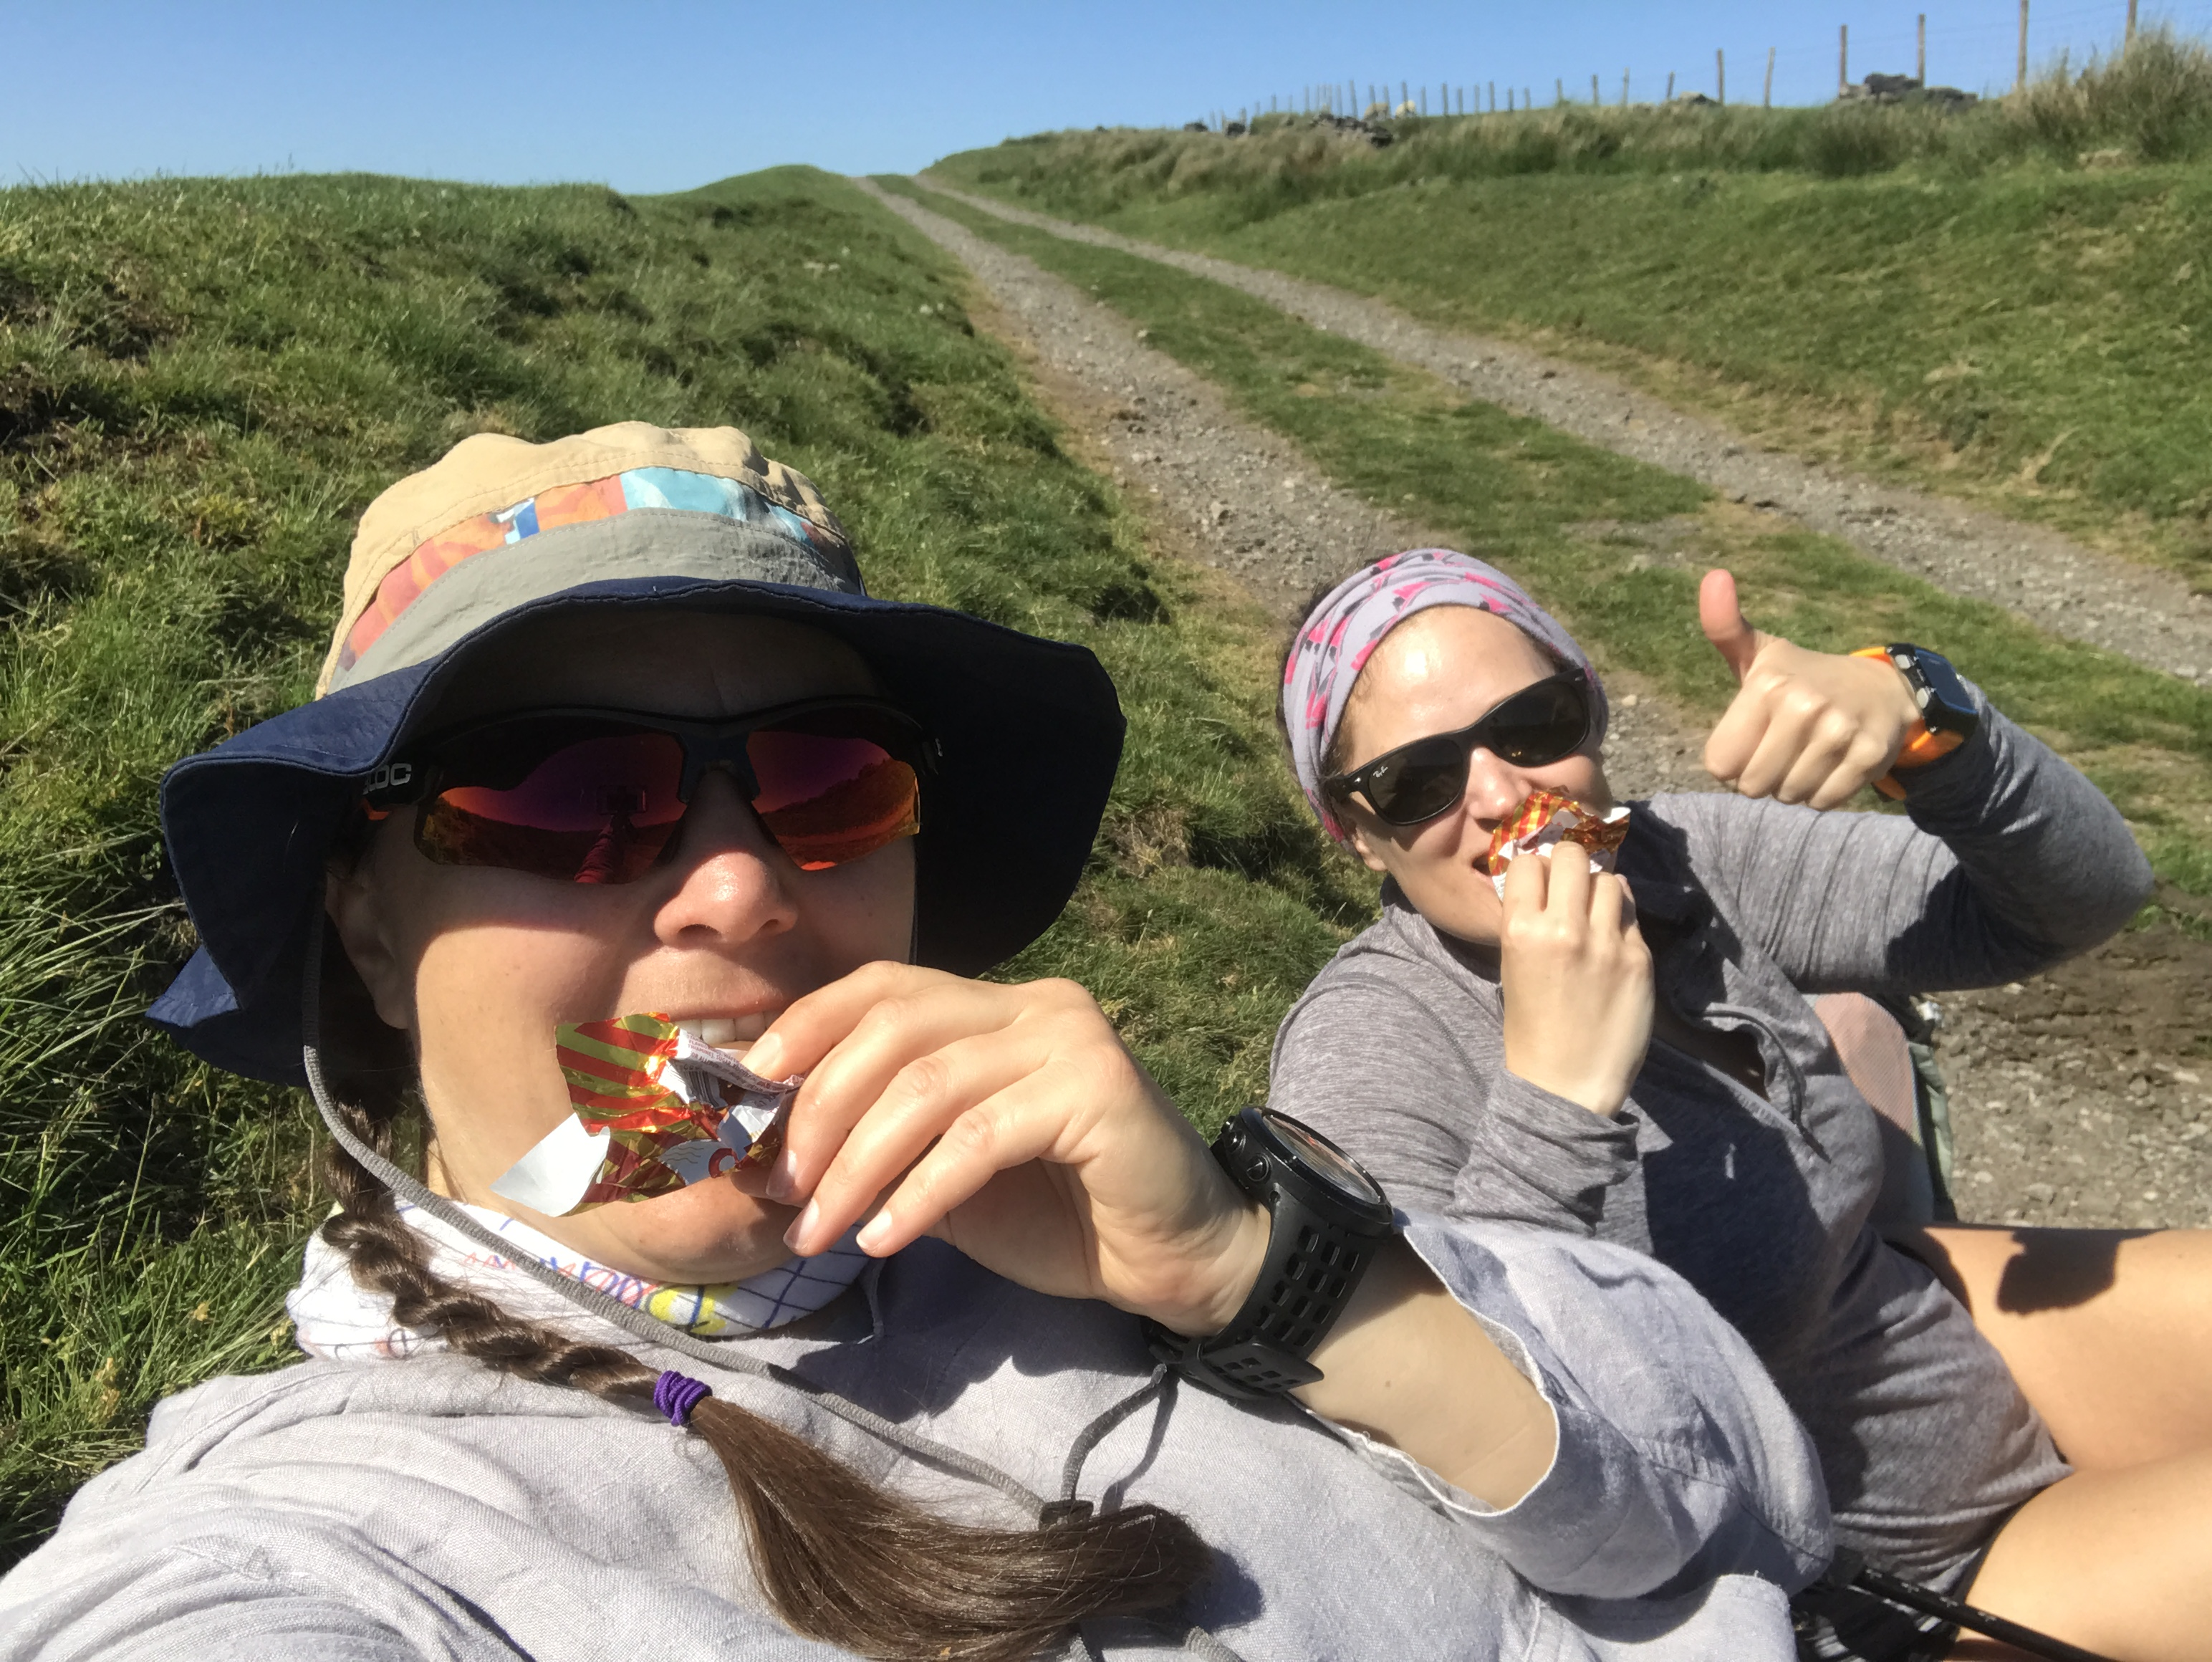 A selfie of Ellen and Sarah sat on a grass bank eating Tunnock's caramel wafer. Behind them tracks stretch up to a blue sky